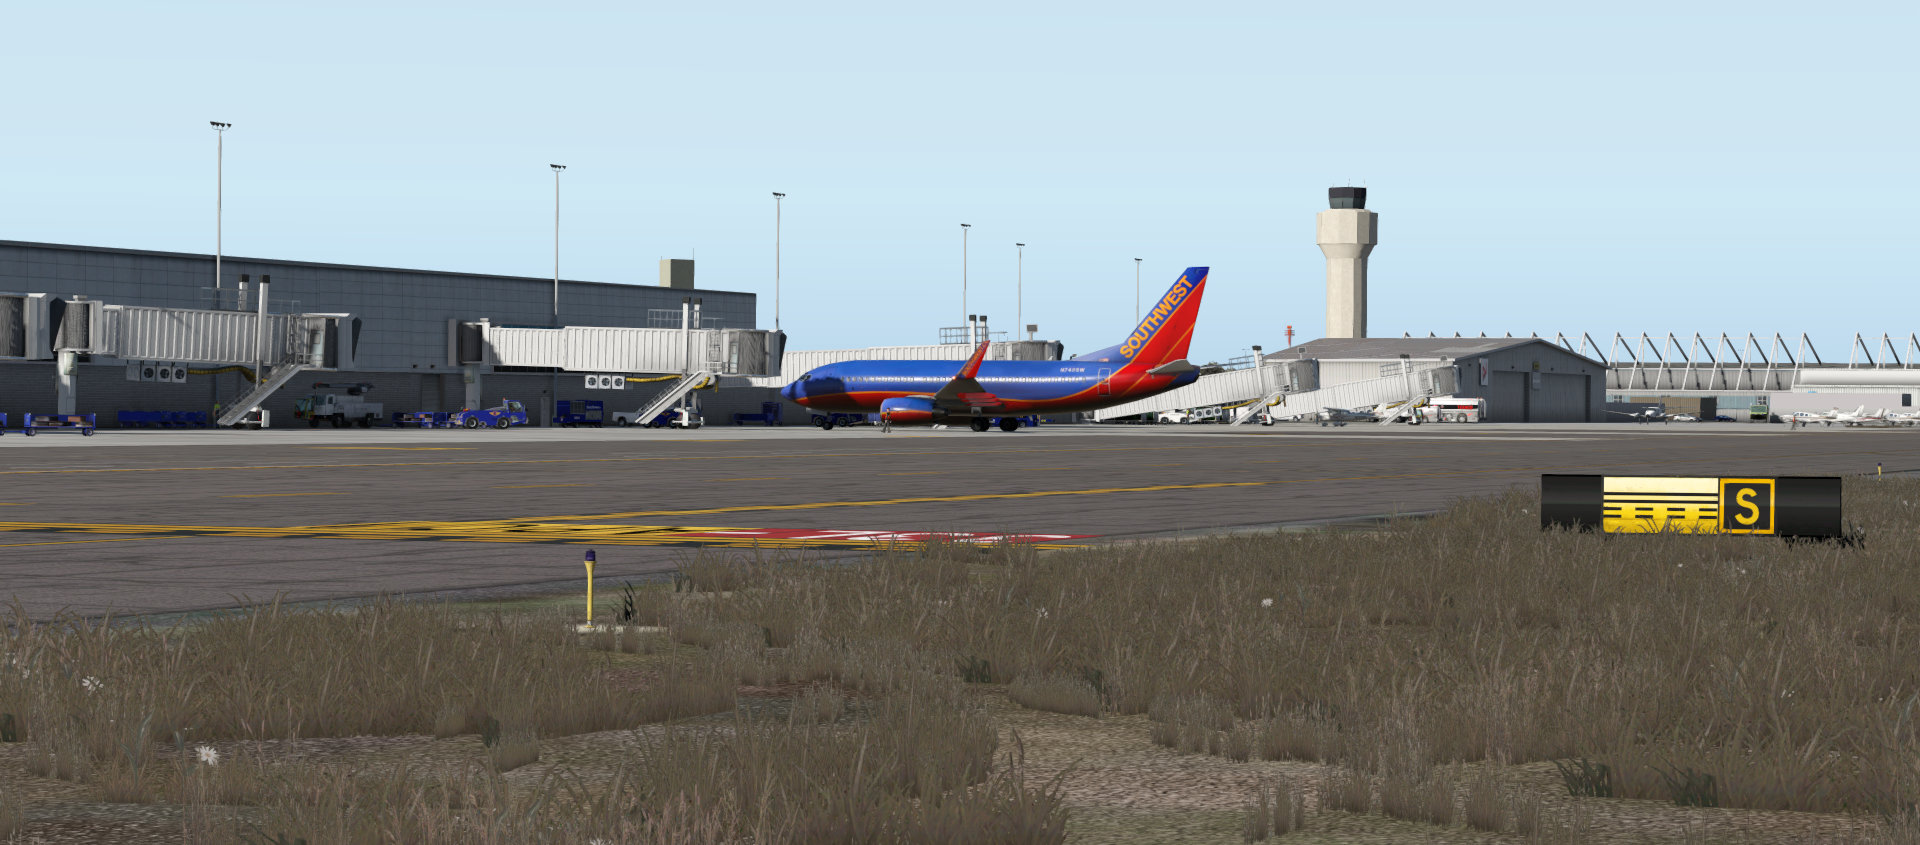 VerticalSimulations Long Island X-Plane 11 Release